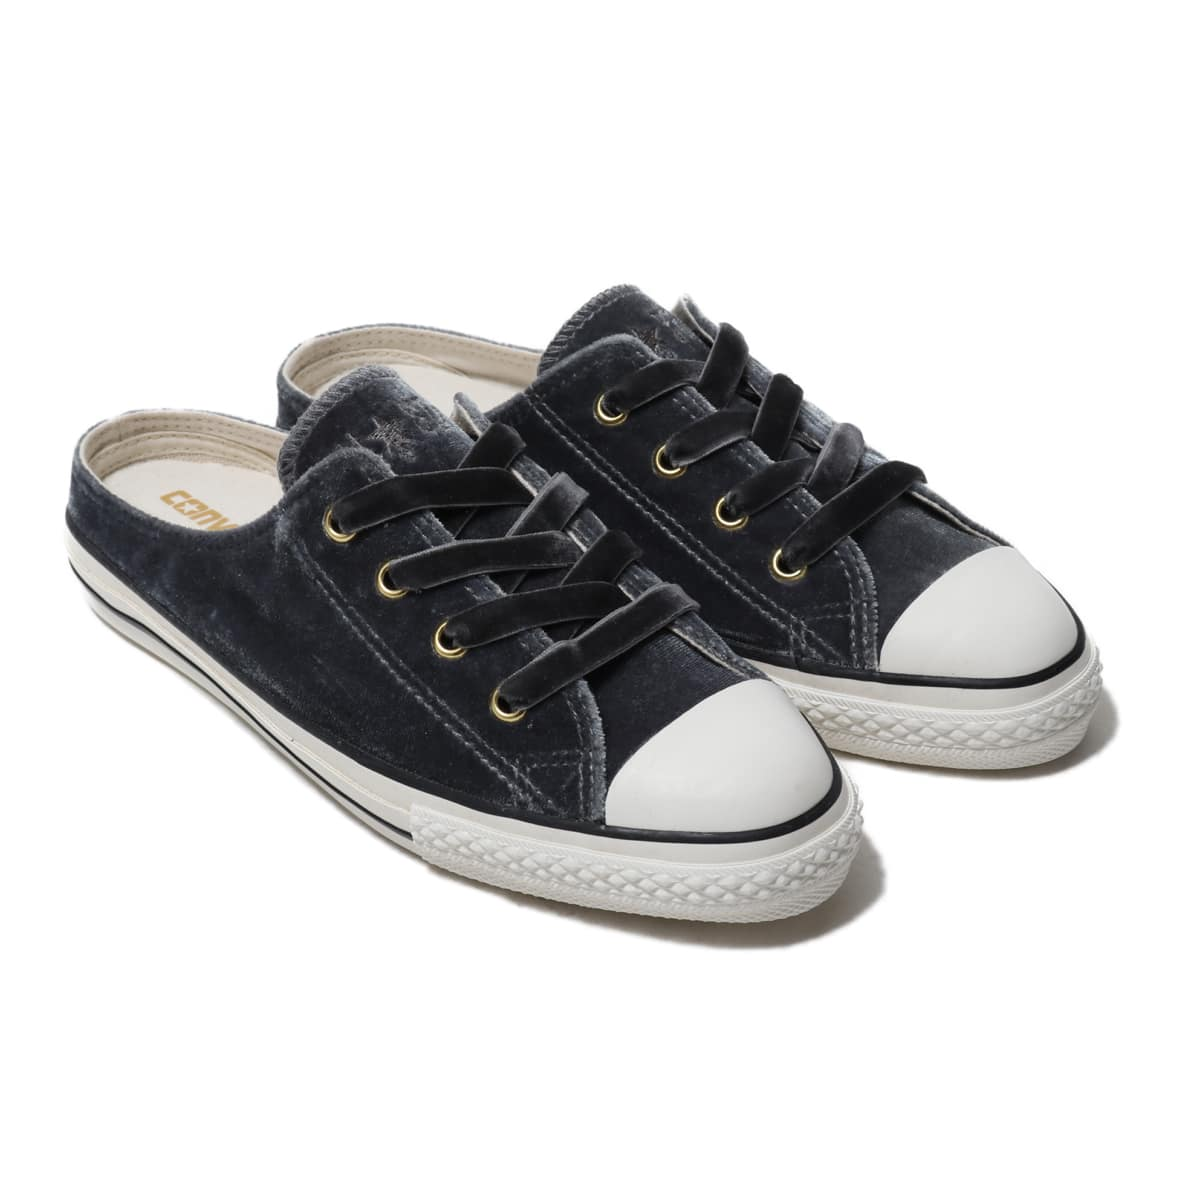 CONVERSE ALL STAR S VELVET MULE OX CHARCOAL 19HO-I_photo_large